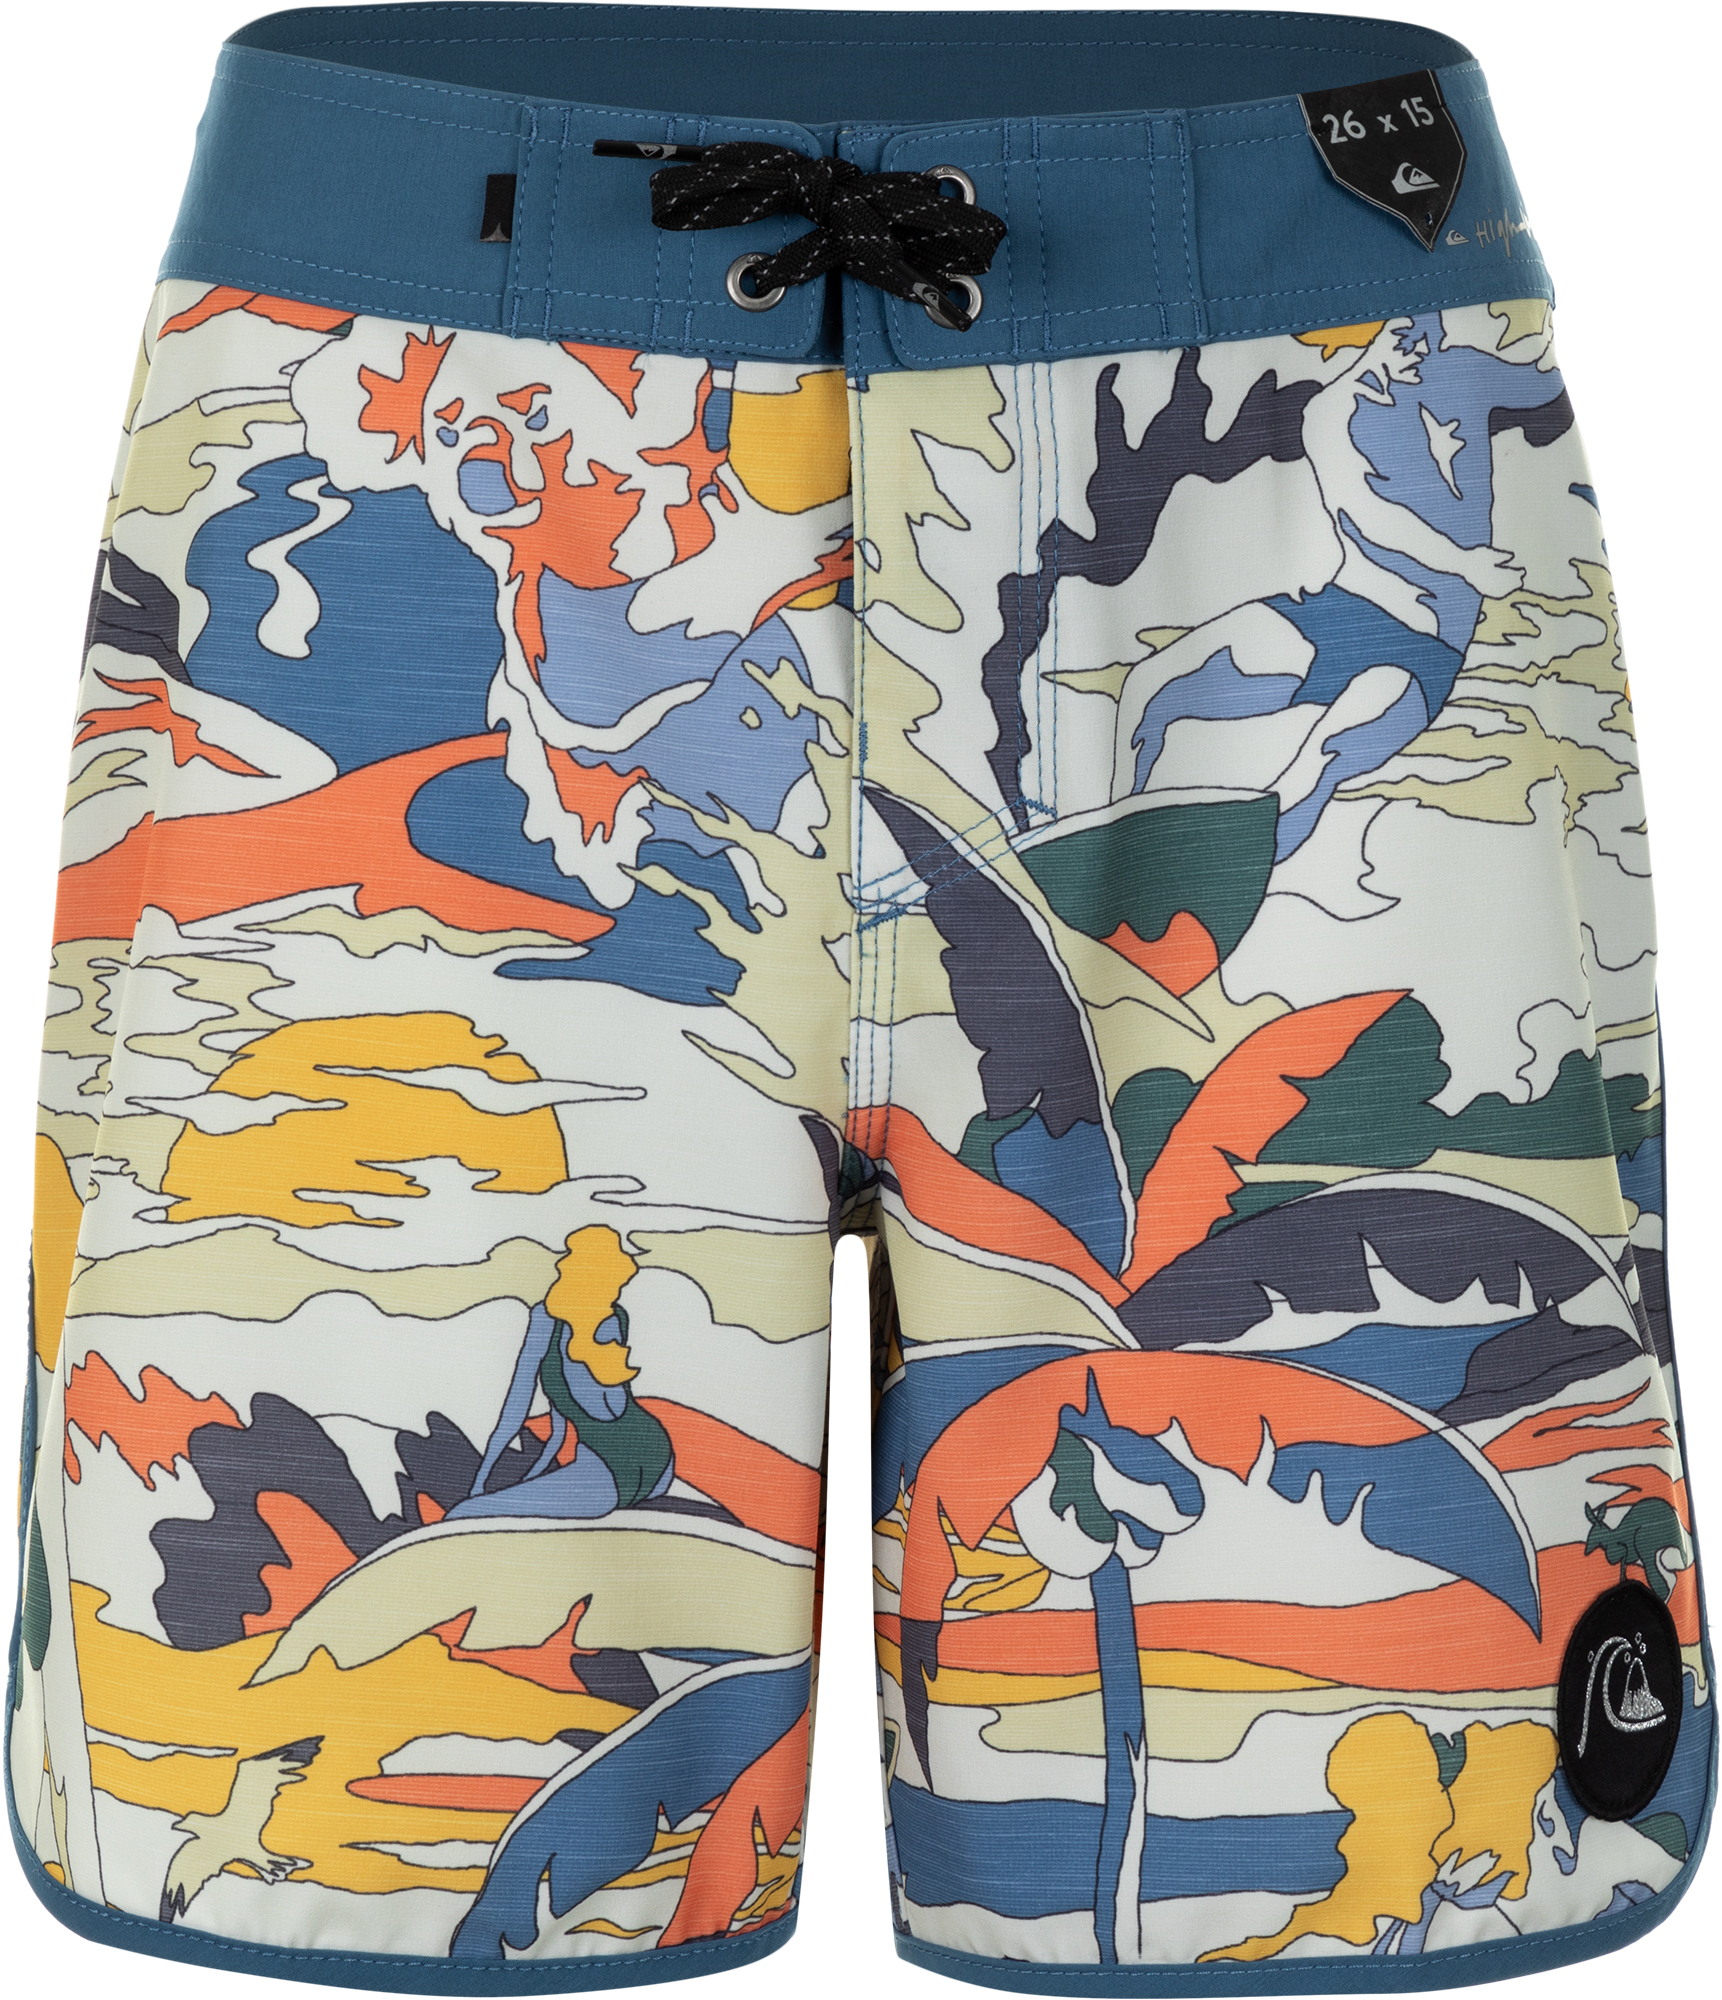 Quiksilver Шорты для мальчиков Quiksilver Highline Feelin Fine Youth 15, размер 164-170 quiksilver штаны прямые детские quiksilver thick wood baby i pant blue salted